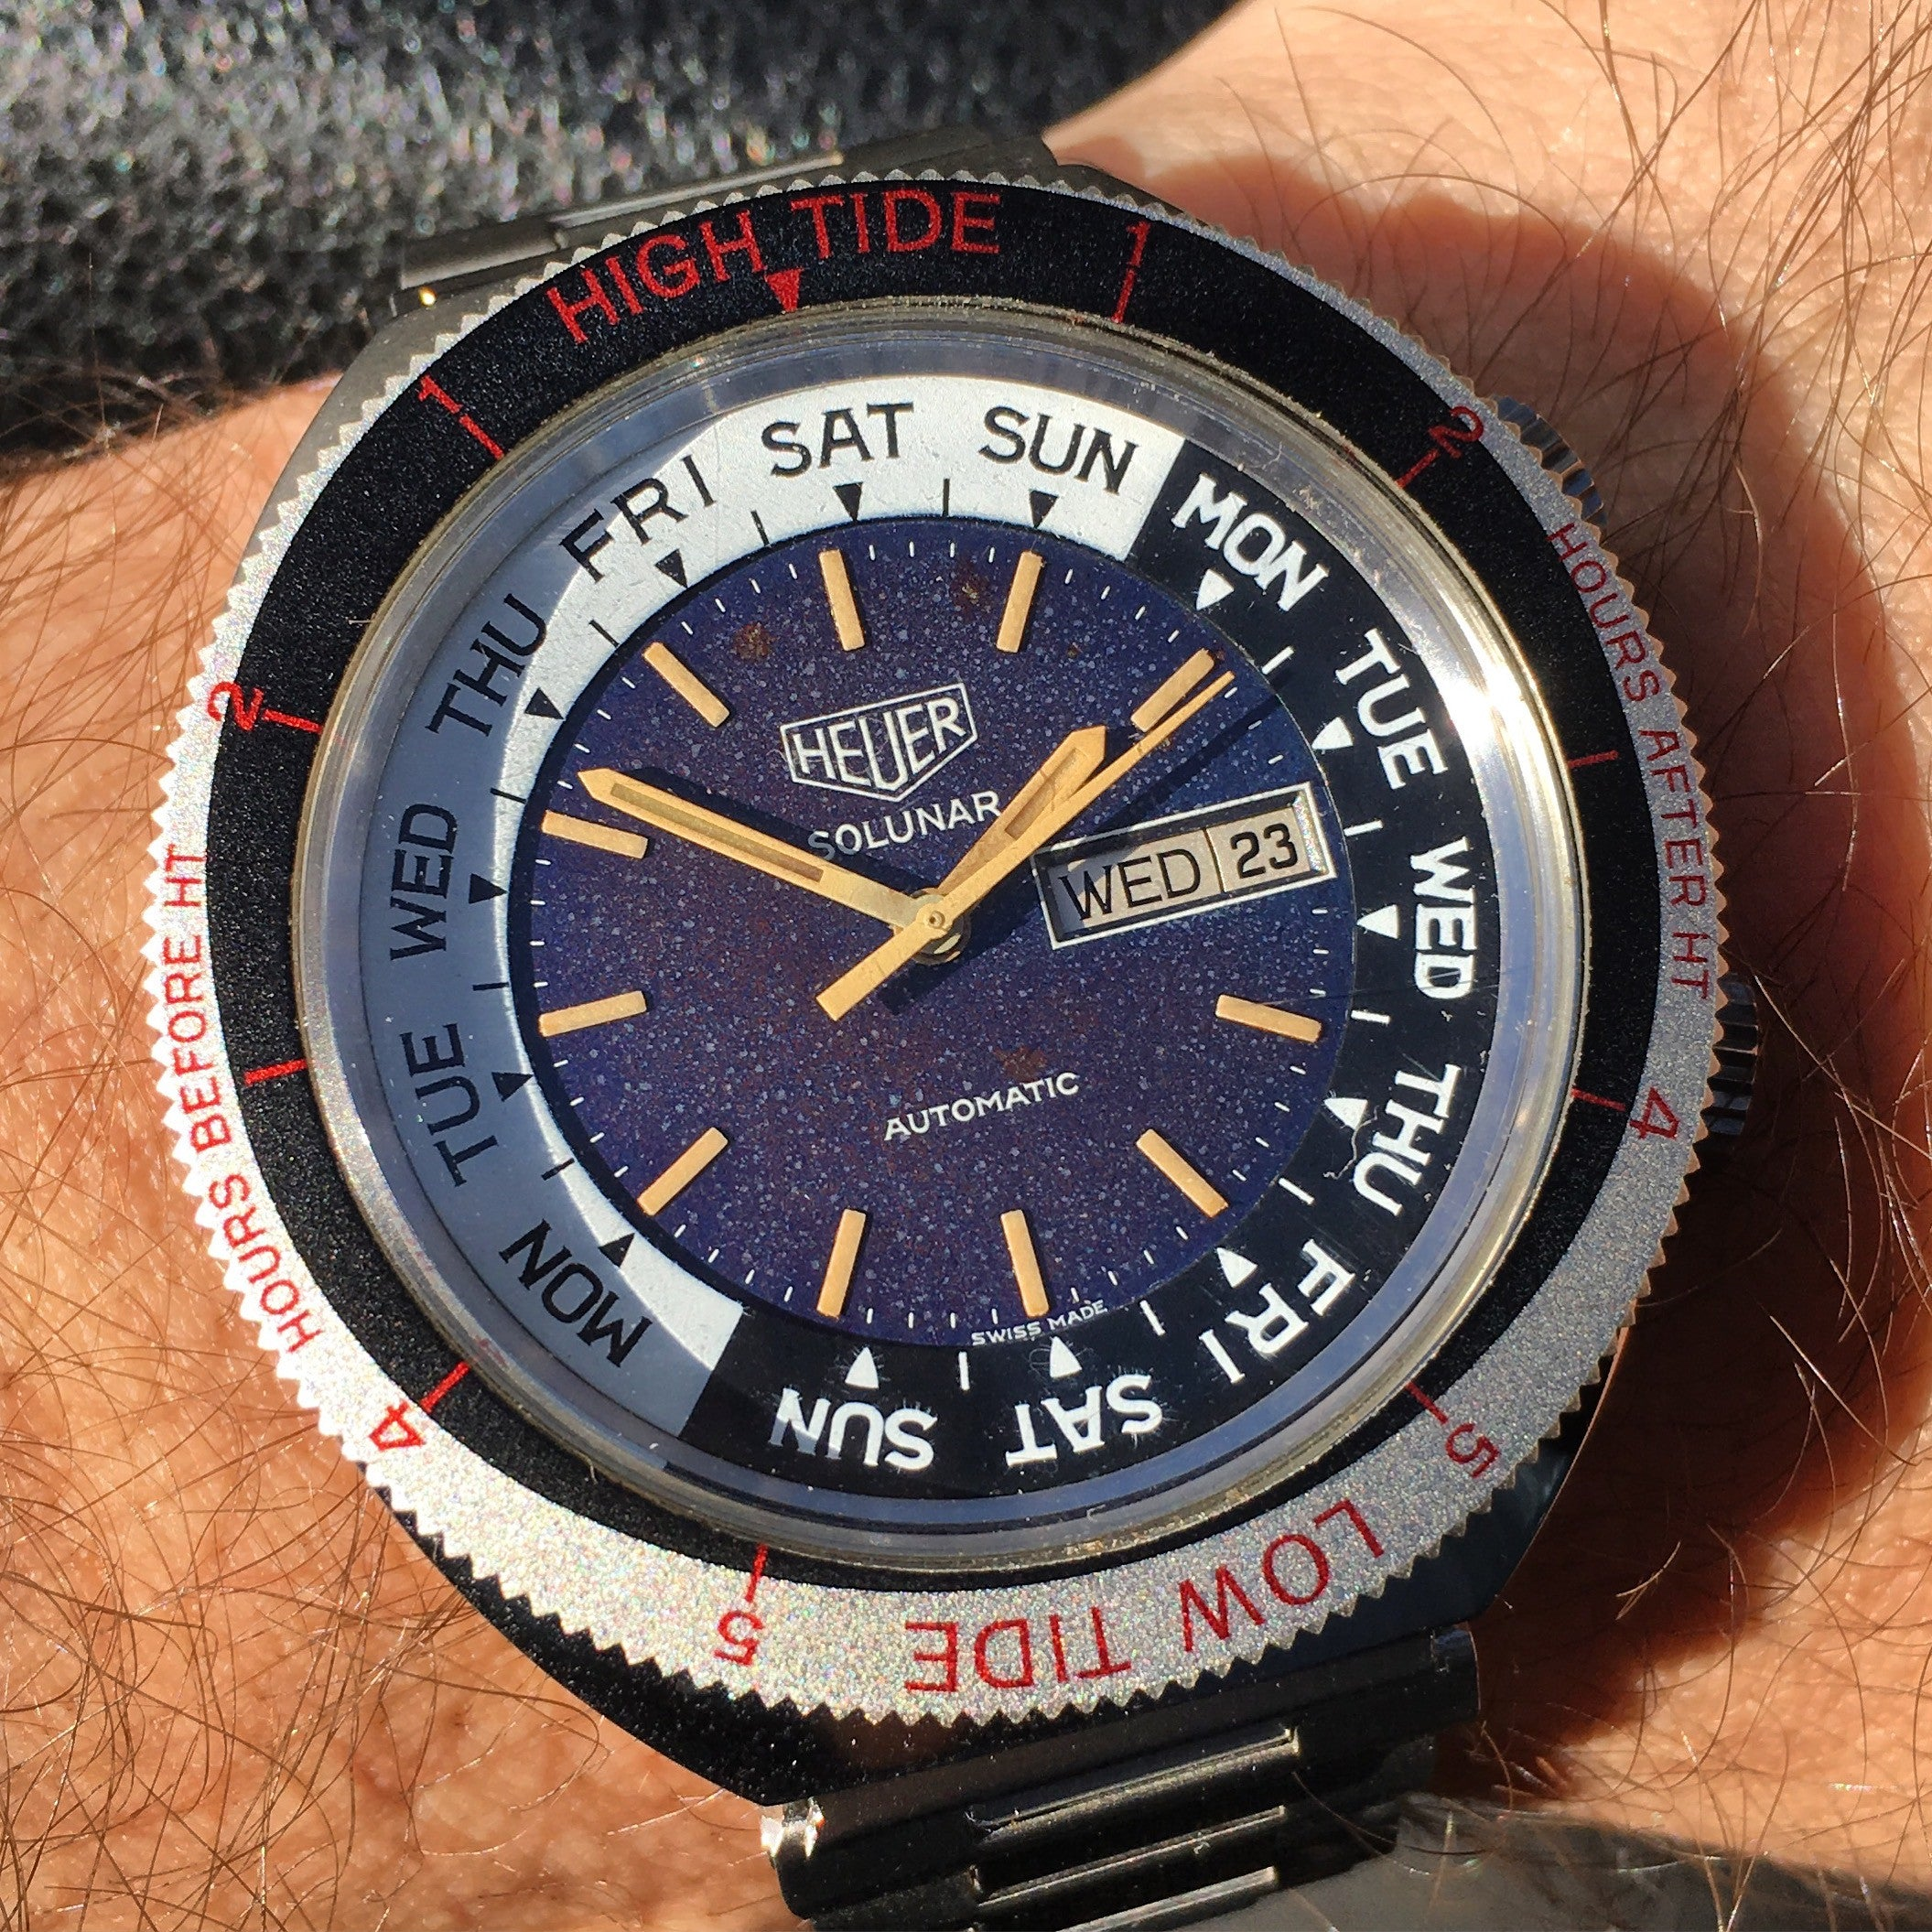 Vintage Heuer Solunar Tide Graphe Steel Day & Date Calendar Automatic Tropical Wristwatch - Hashtag Watch Company